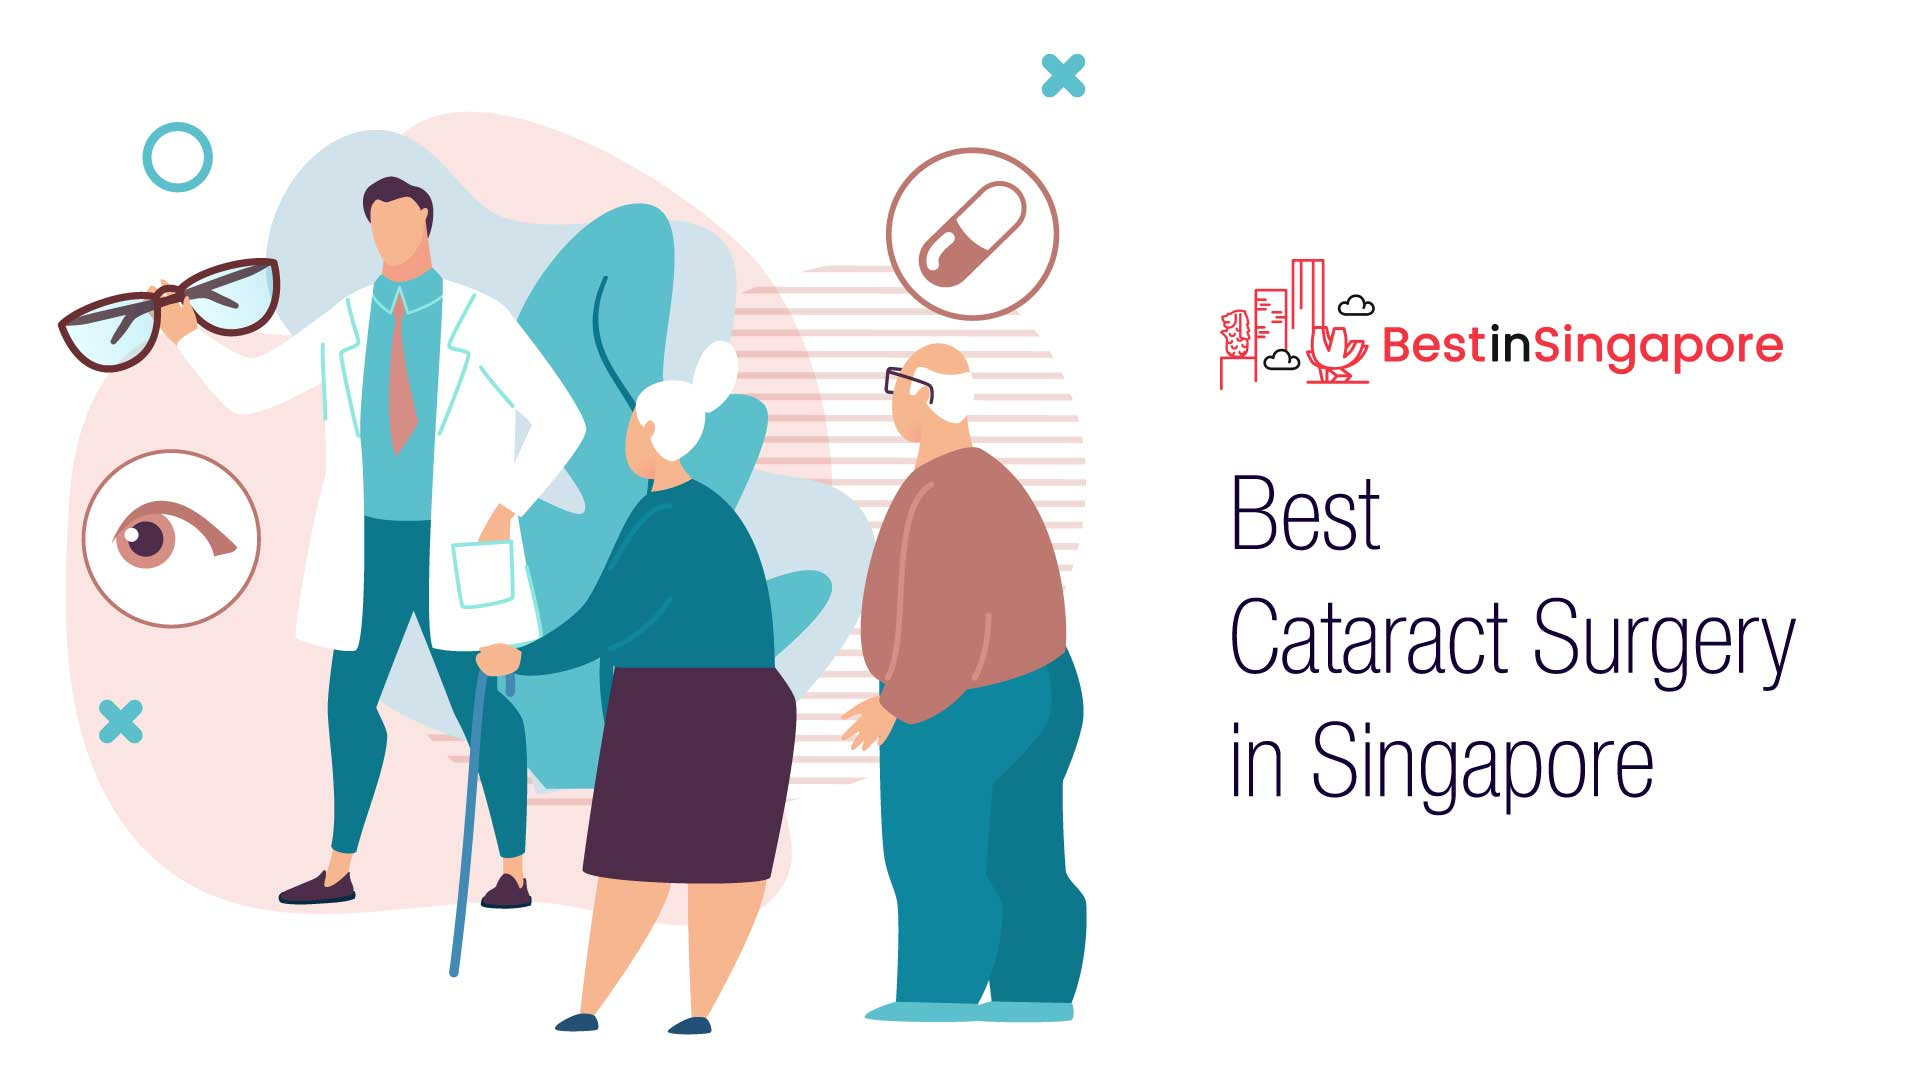 Best Cataract Surgery in Singapore